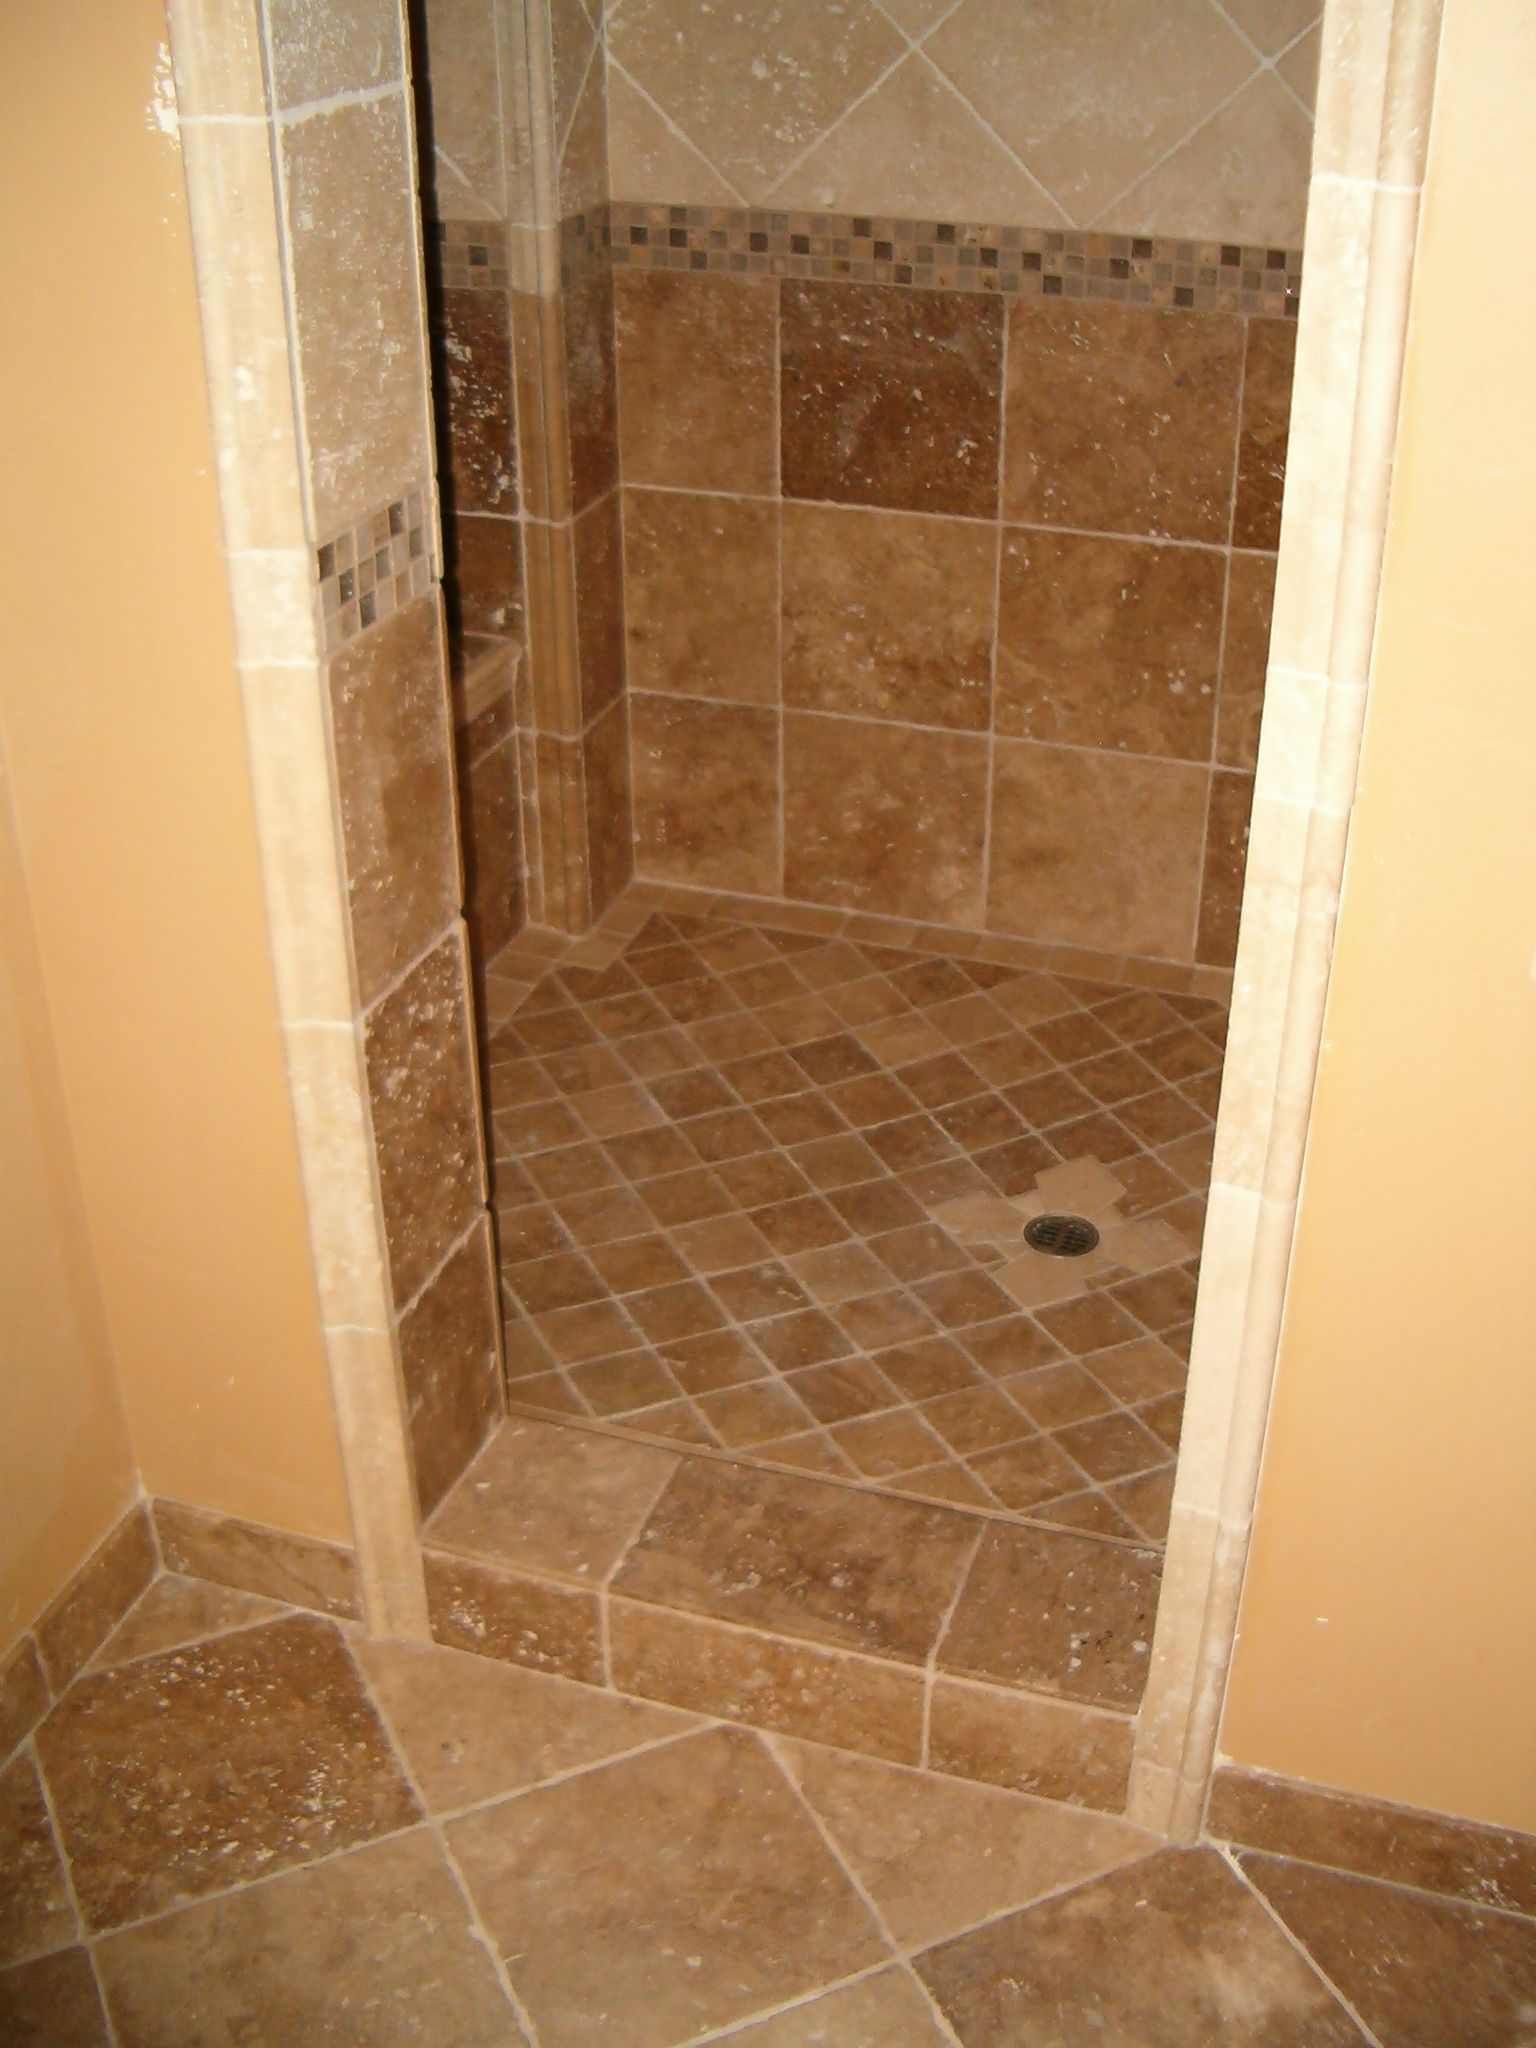 How to clean grout in shower with environmentally friendly you have to keep the shower tiles clean to prevent grout in fact grout dailygadgetfo Image collections